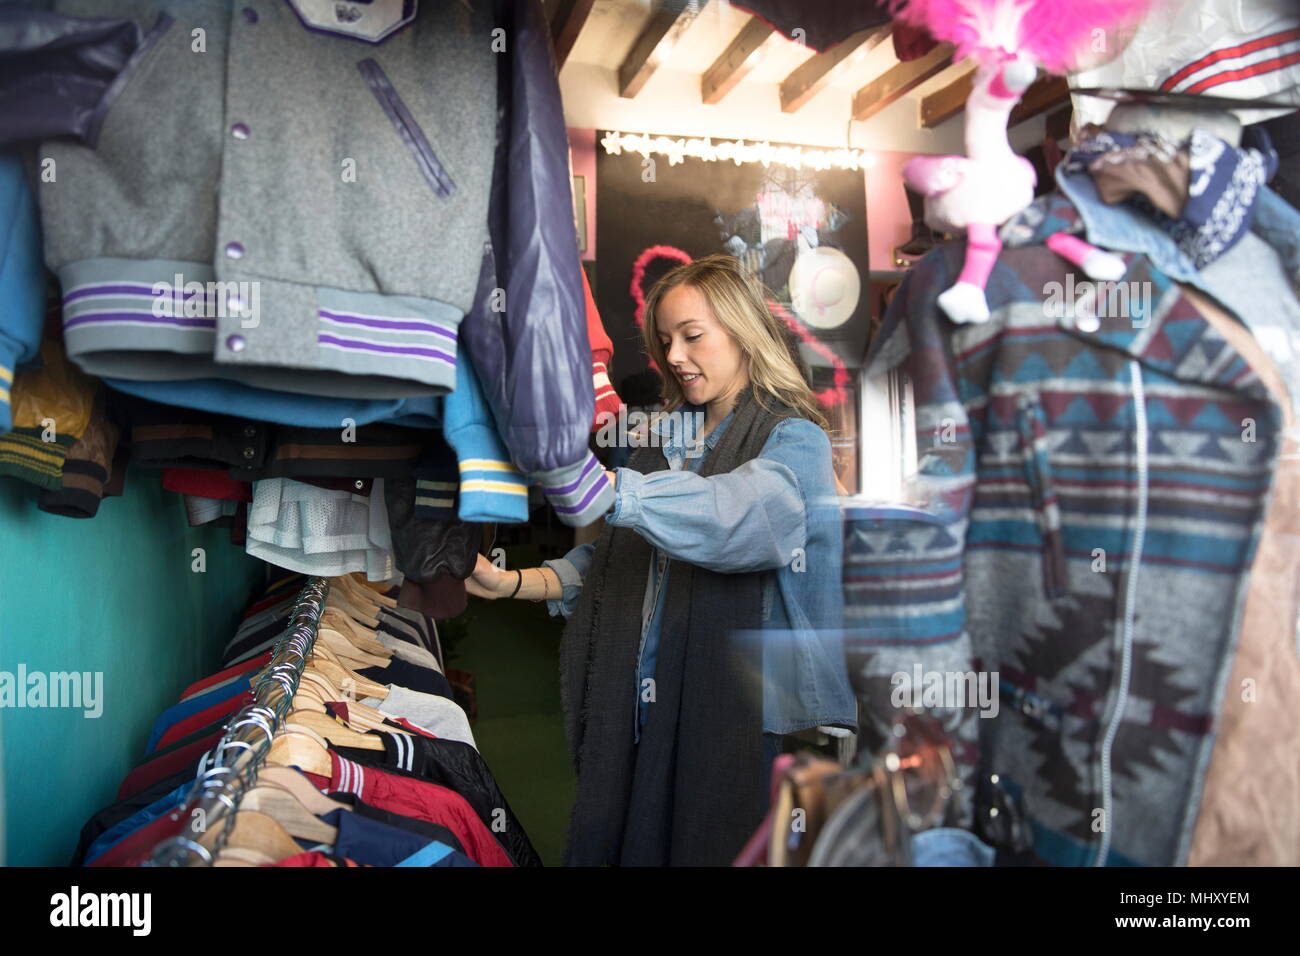 Young woman browsing vintage clothes in thrift store - Stock Image